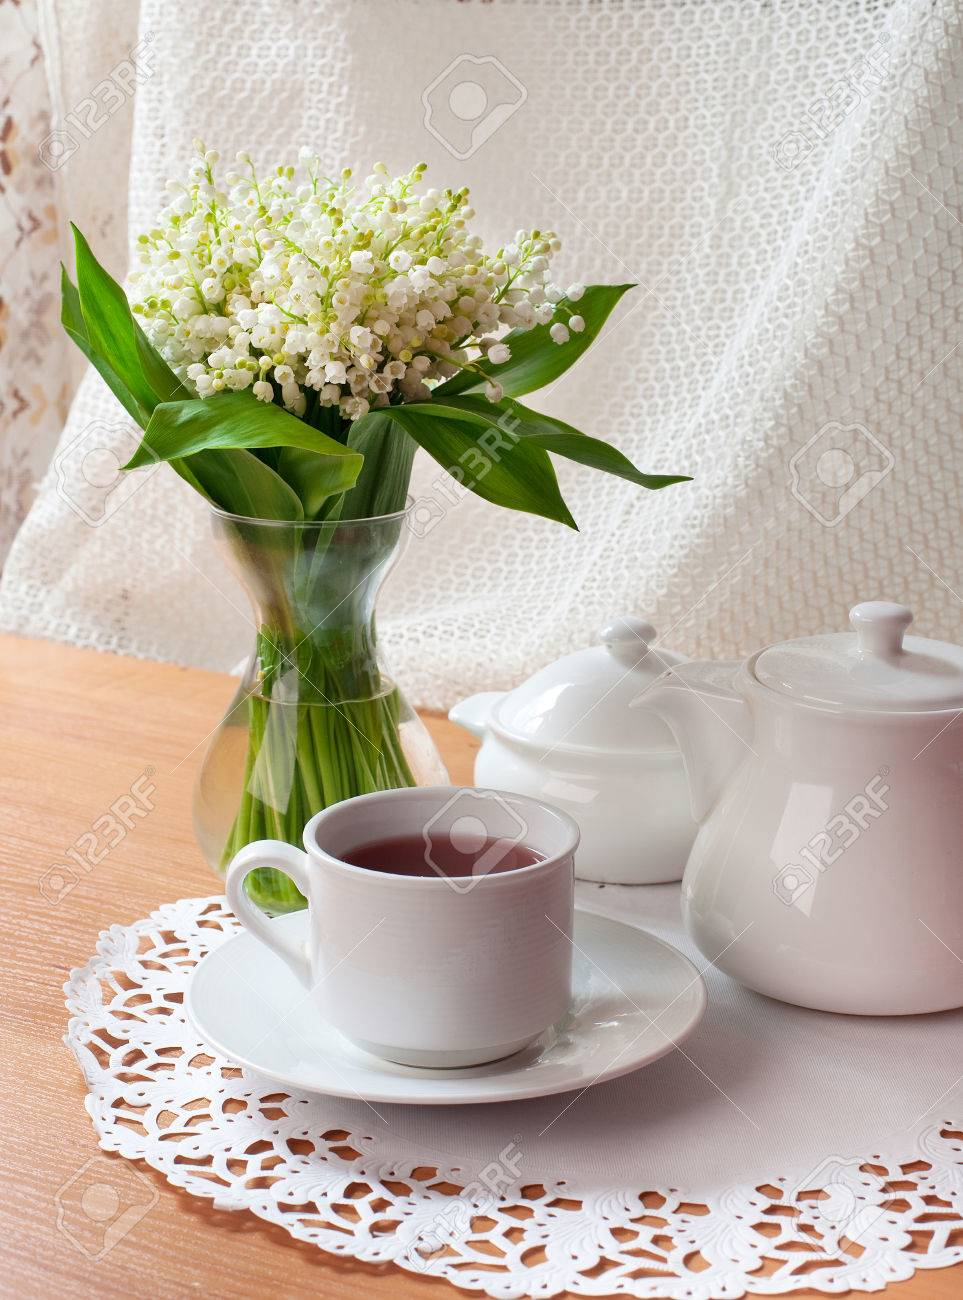 morning tea table setting with Lily of the valley flowers bouquet Stock Photo - 28426118 & Morning Tea Table Setting With Lily Of The Valley Flowers Bouquet ...